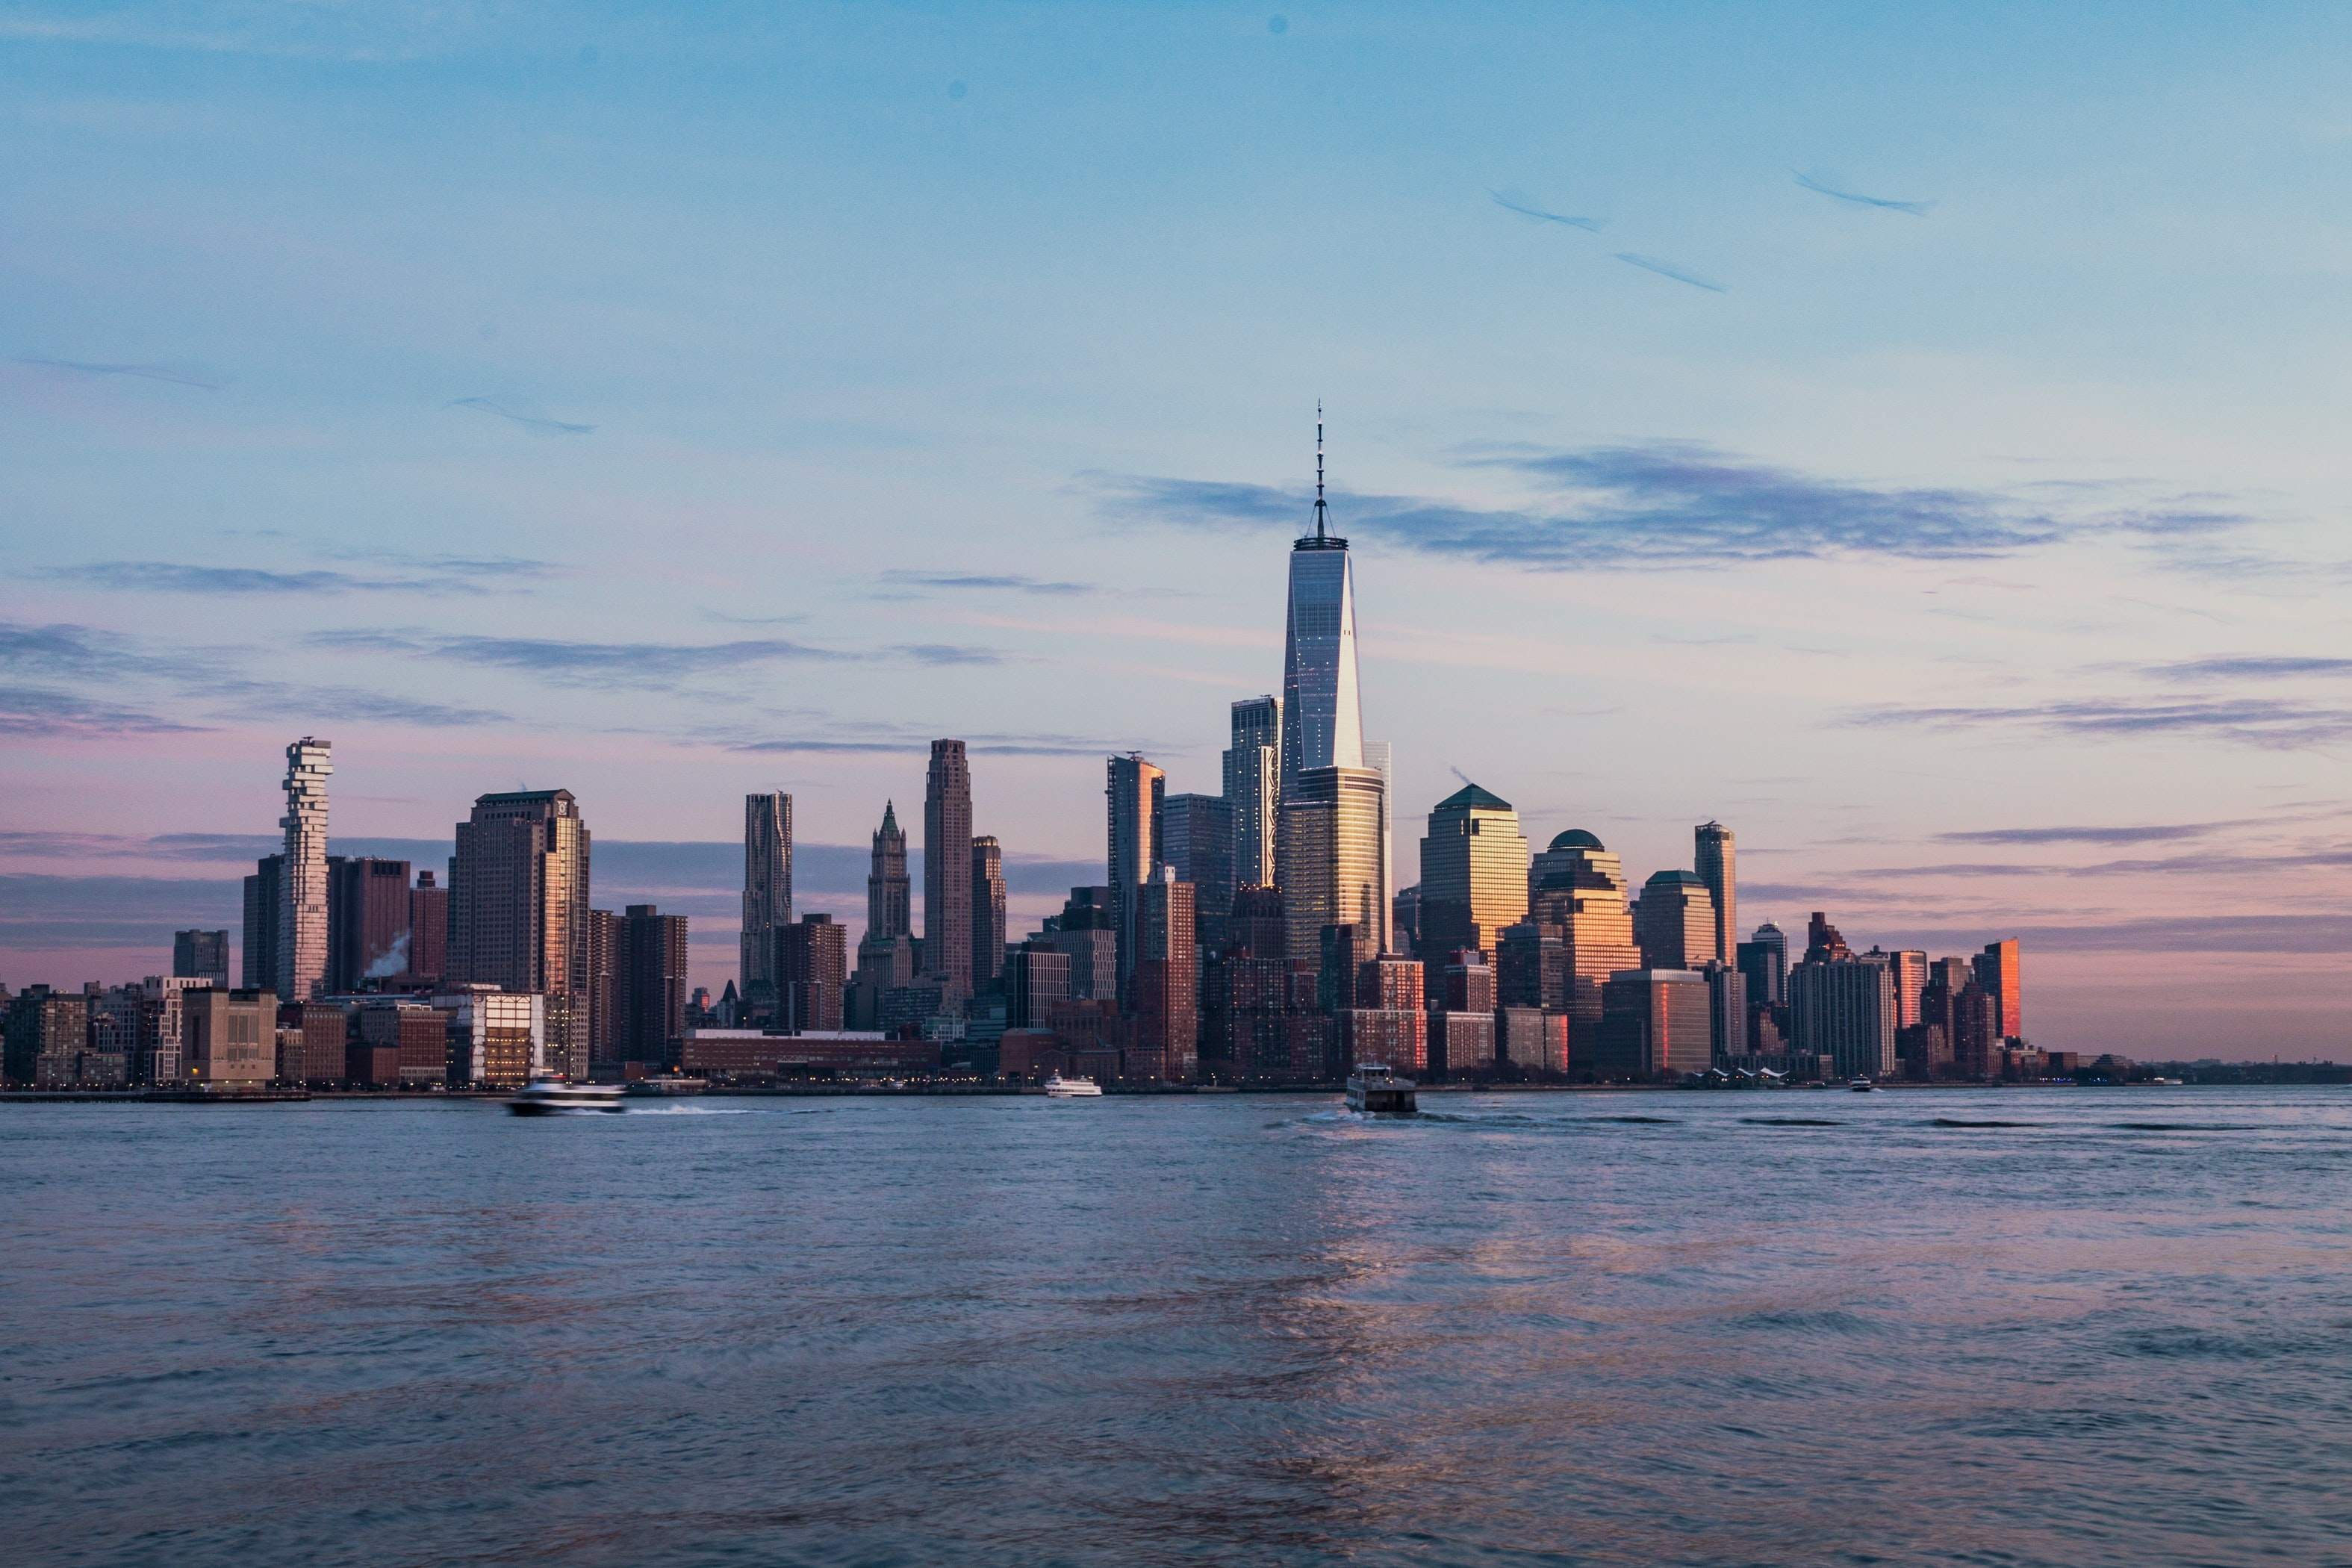 Die Skyline von New York City